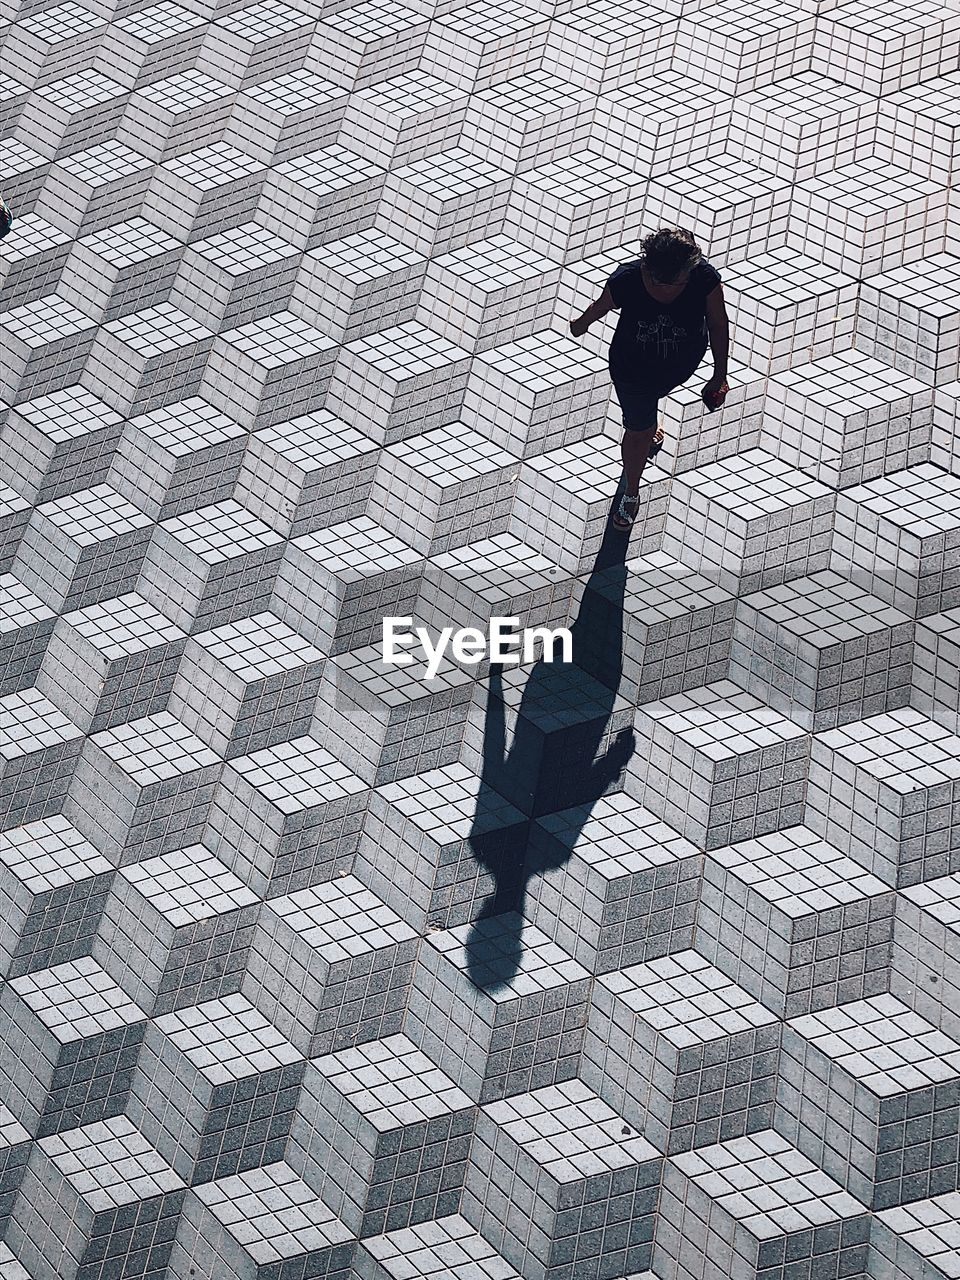 HIGH ANGLE VIEW OF MAN WITH SHADOW ON STREET